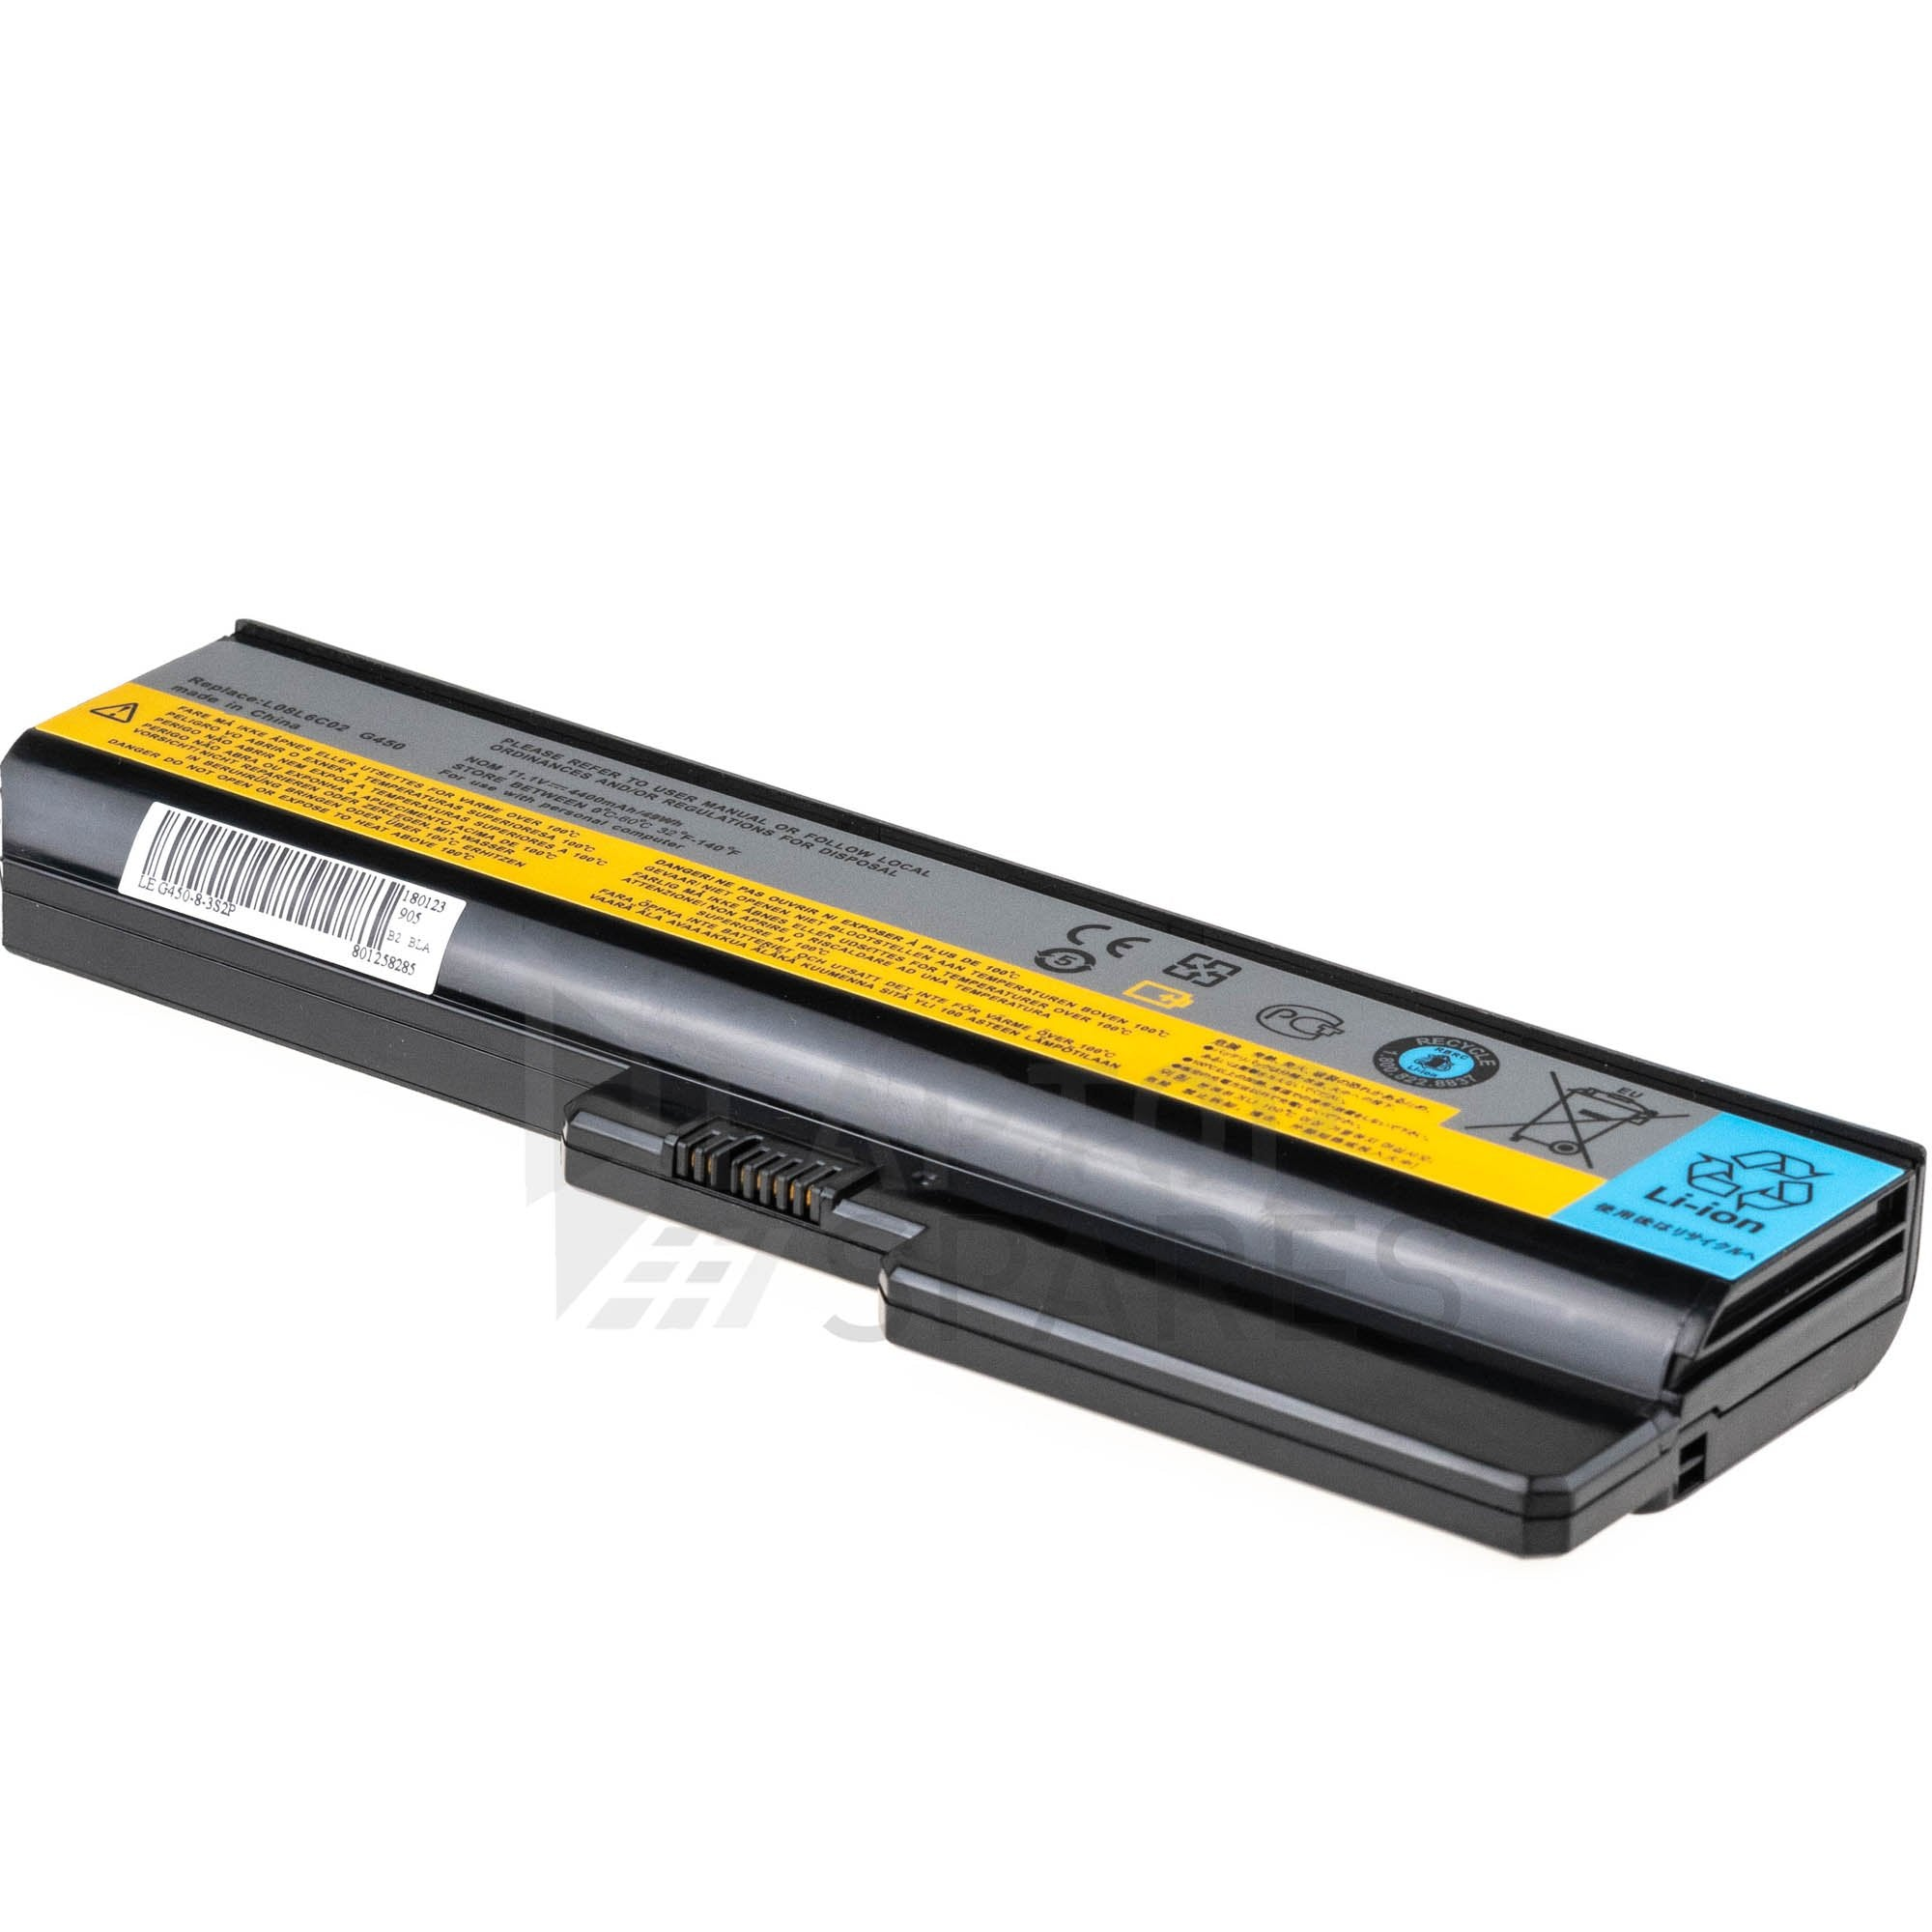 Lenovo 3000 G430M G430A G430L 4400mAh 6 Cell Battery